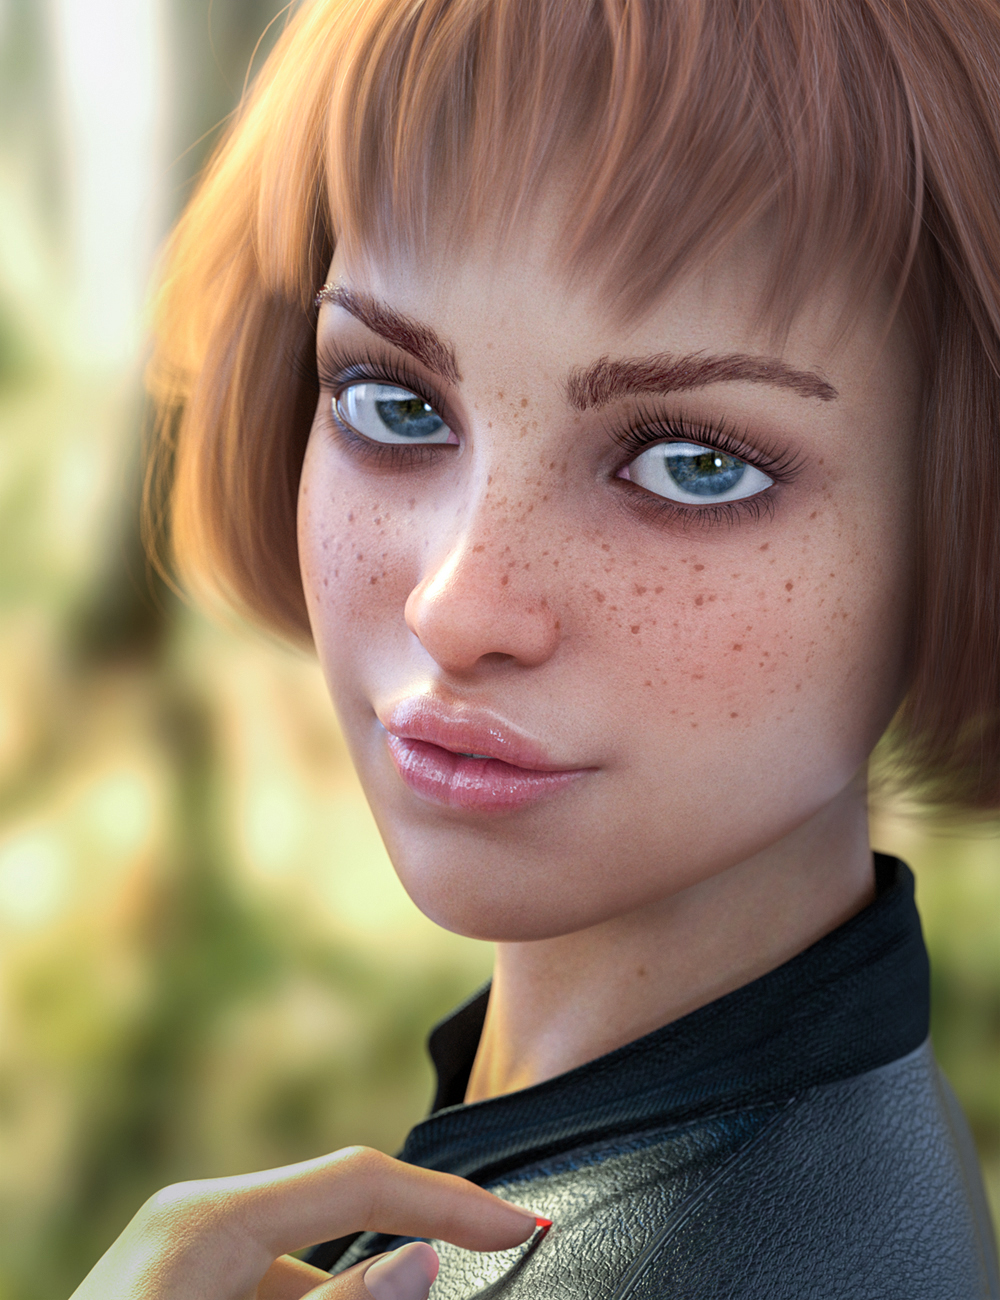 Mercy HD for Genesis 8 Female and Genesis 8.1 Female by: Colm Jackson, 3D Models by Daz 3D